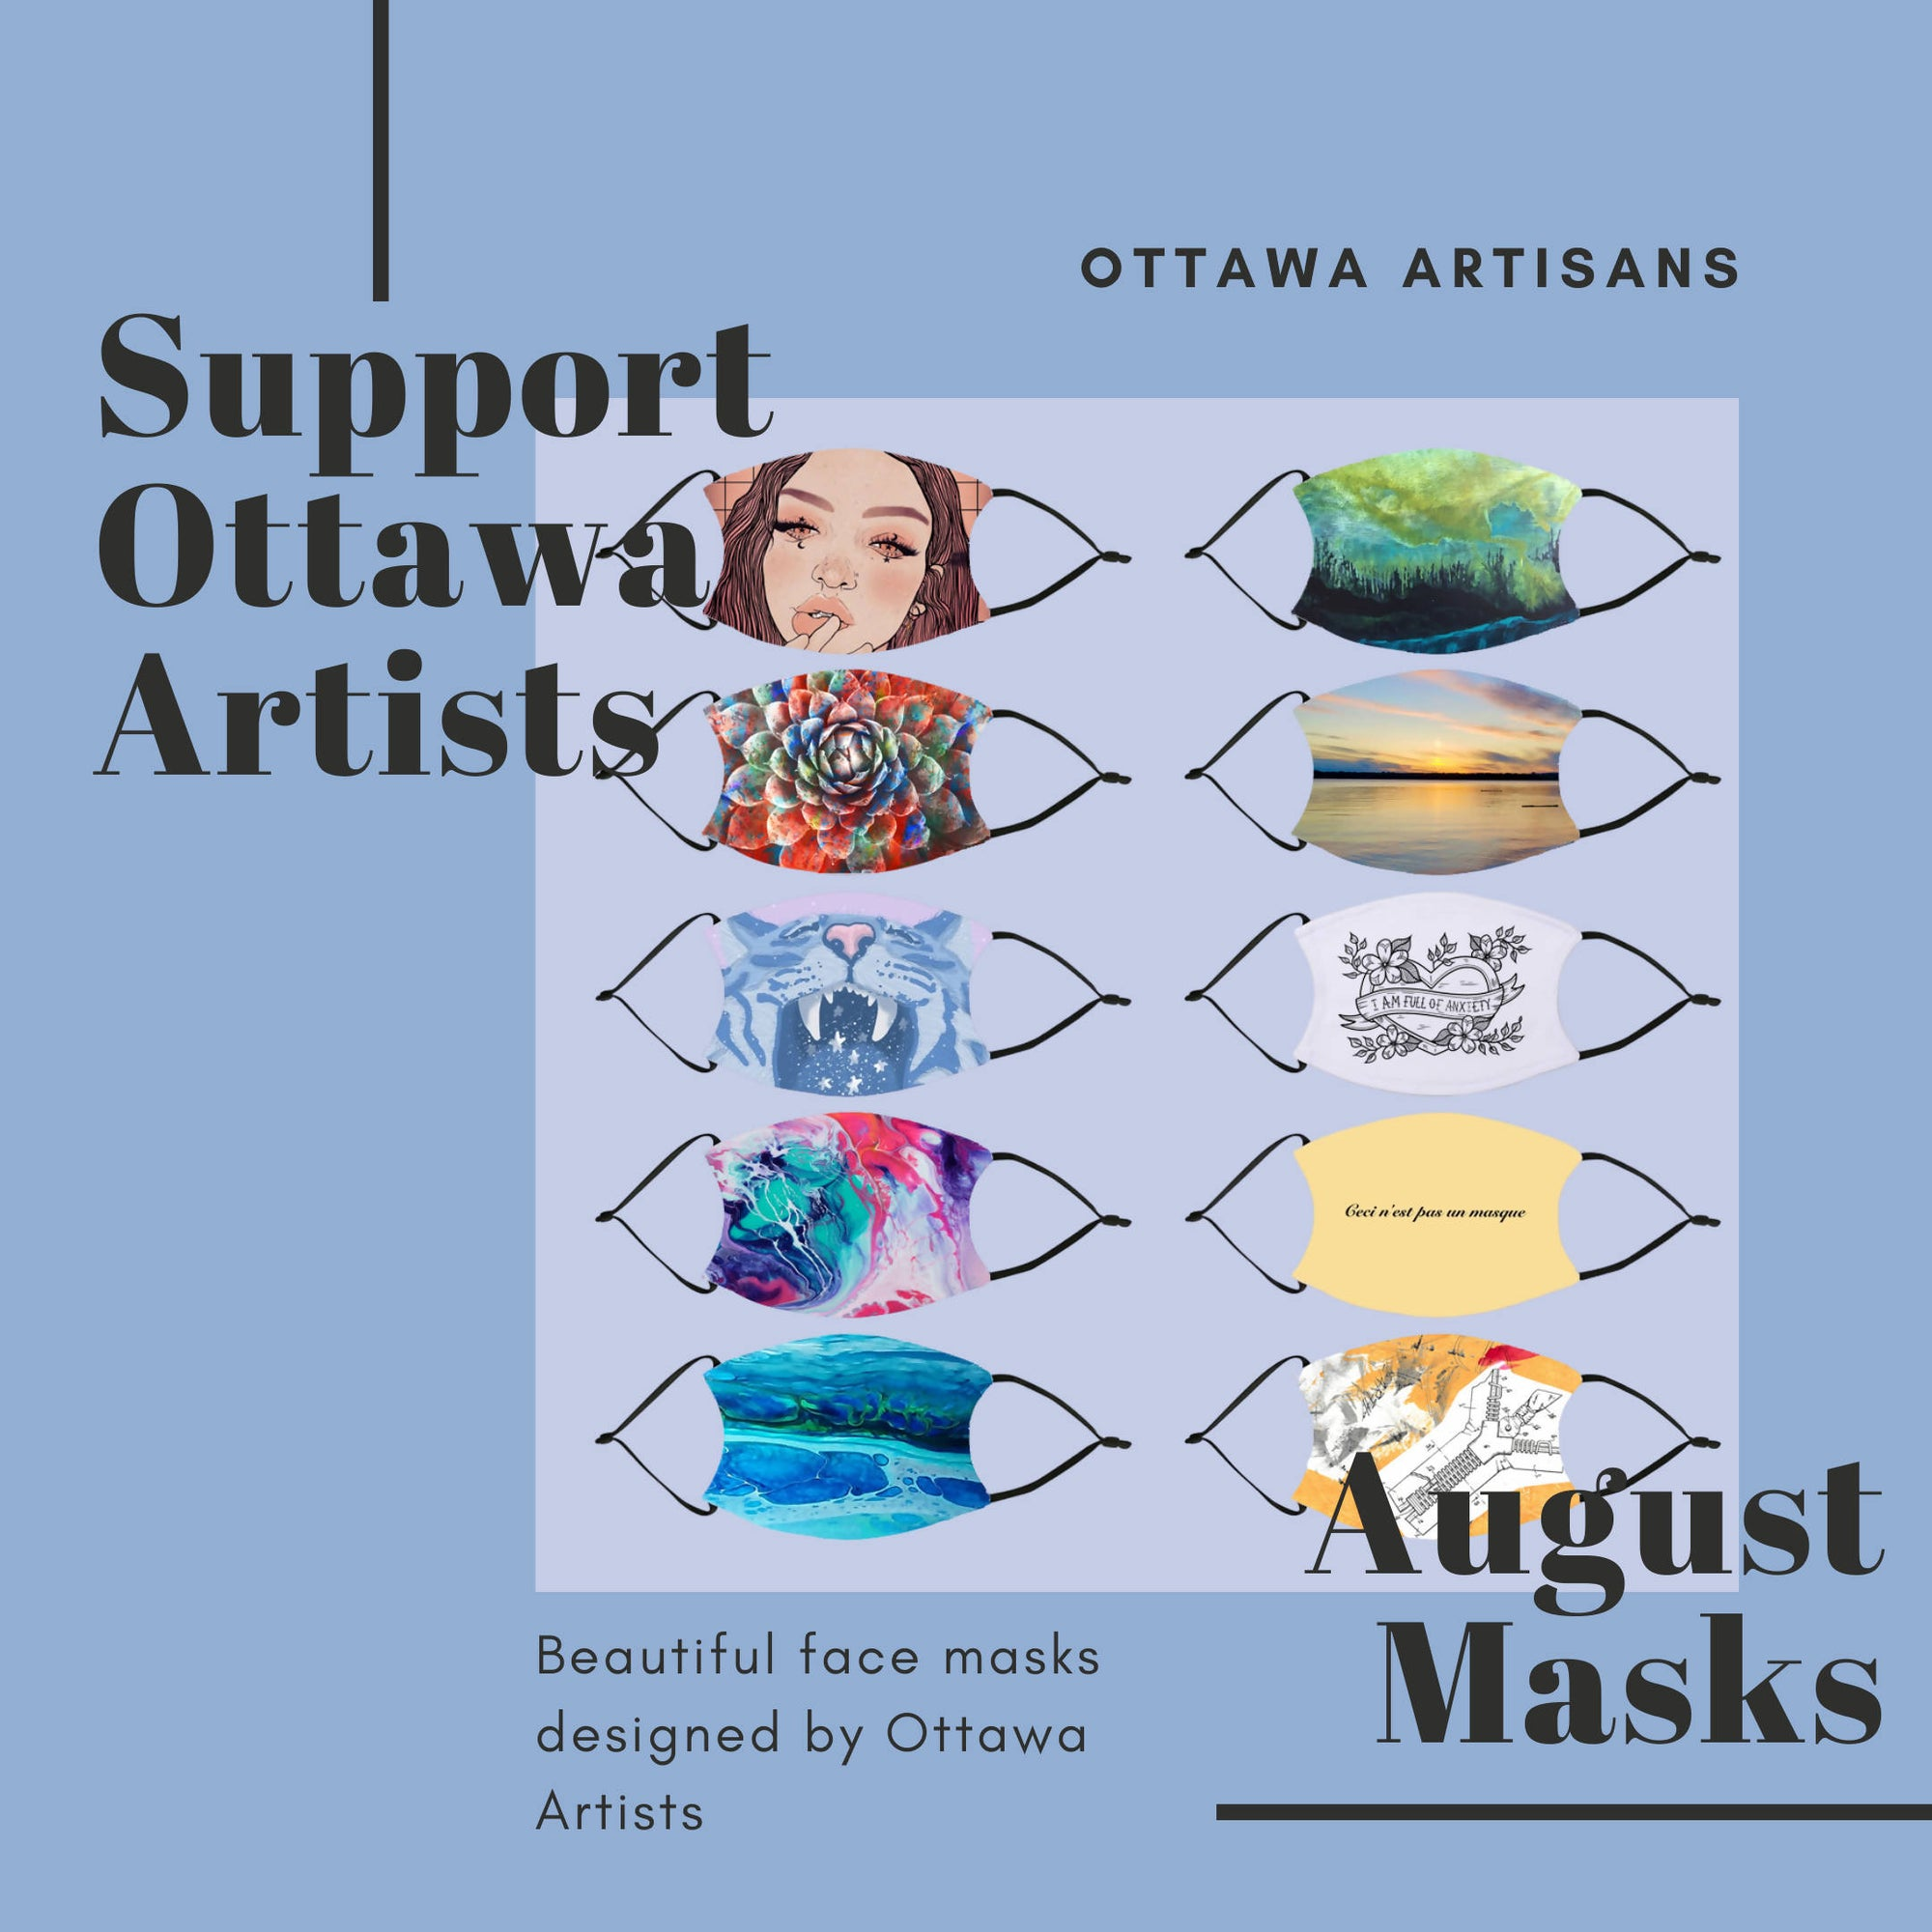 Ottawa Artist Masks - August